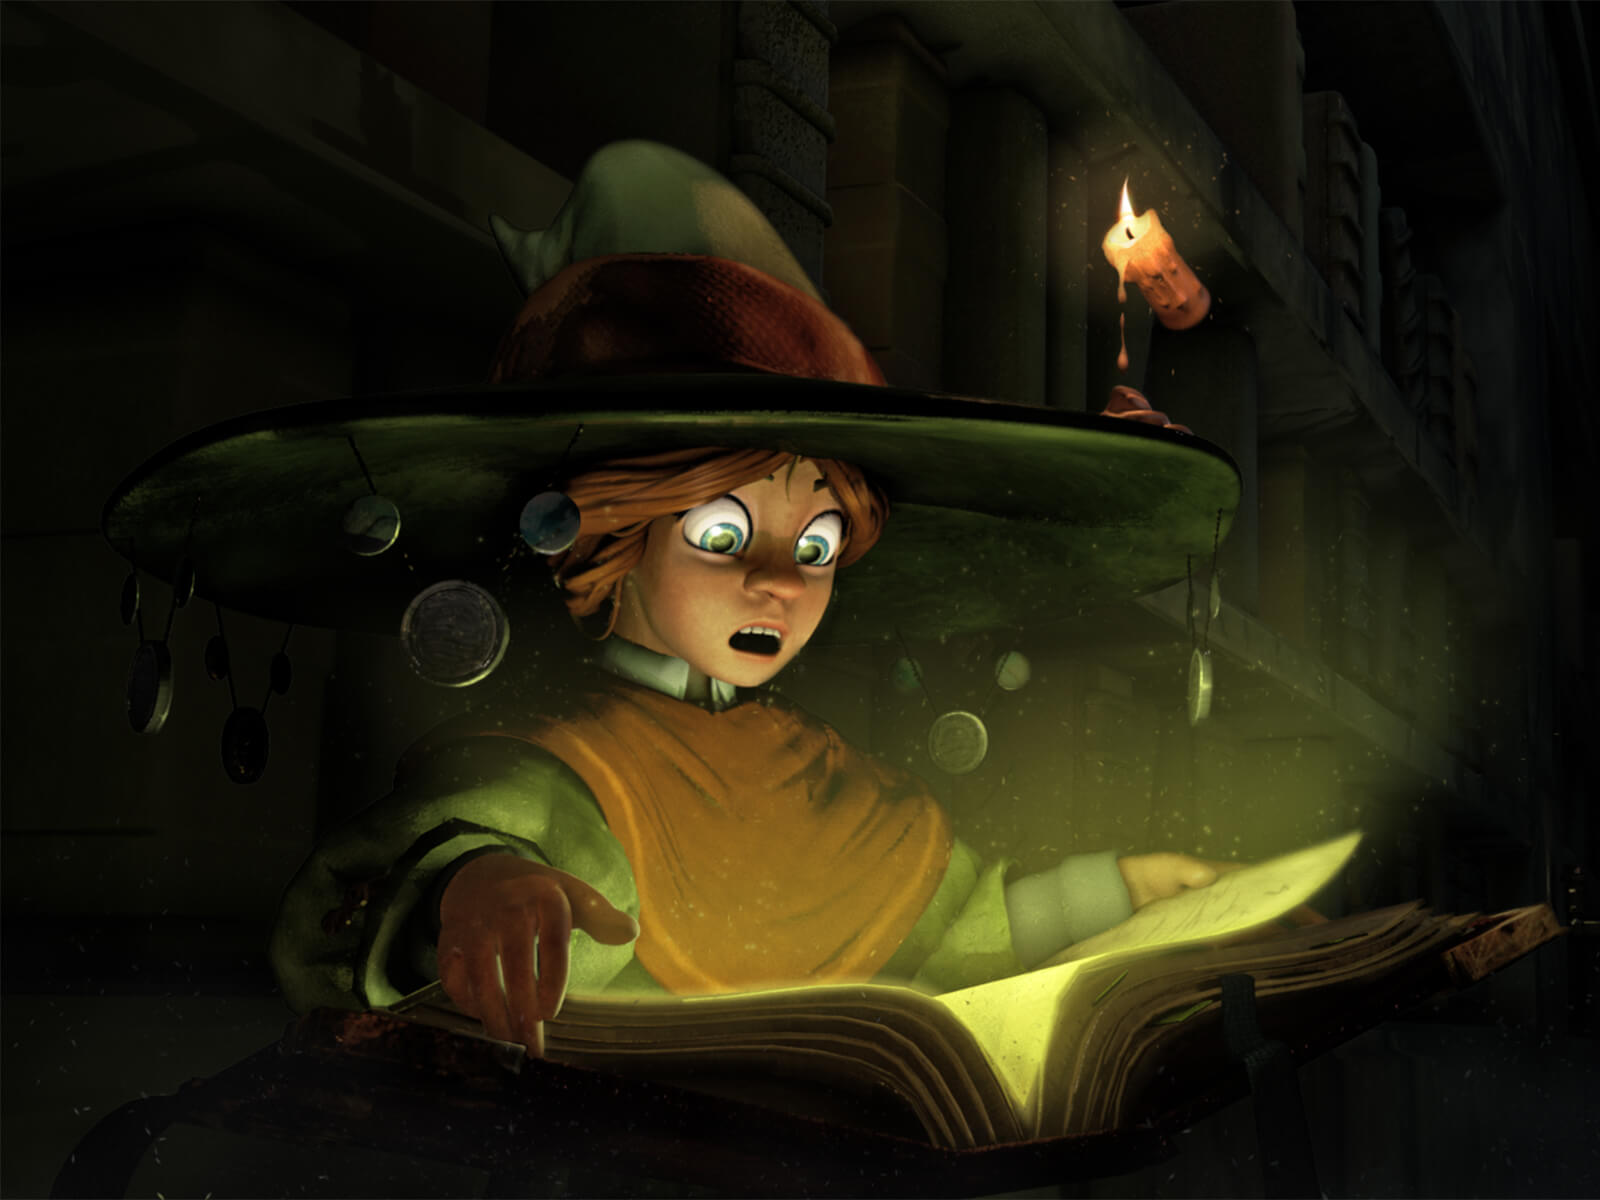 computer-generated 3D model of a character with huge green eyes reacting with shock at the book in front of them